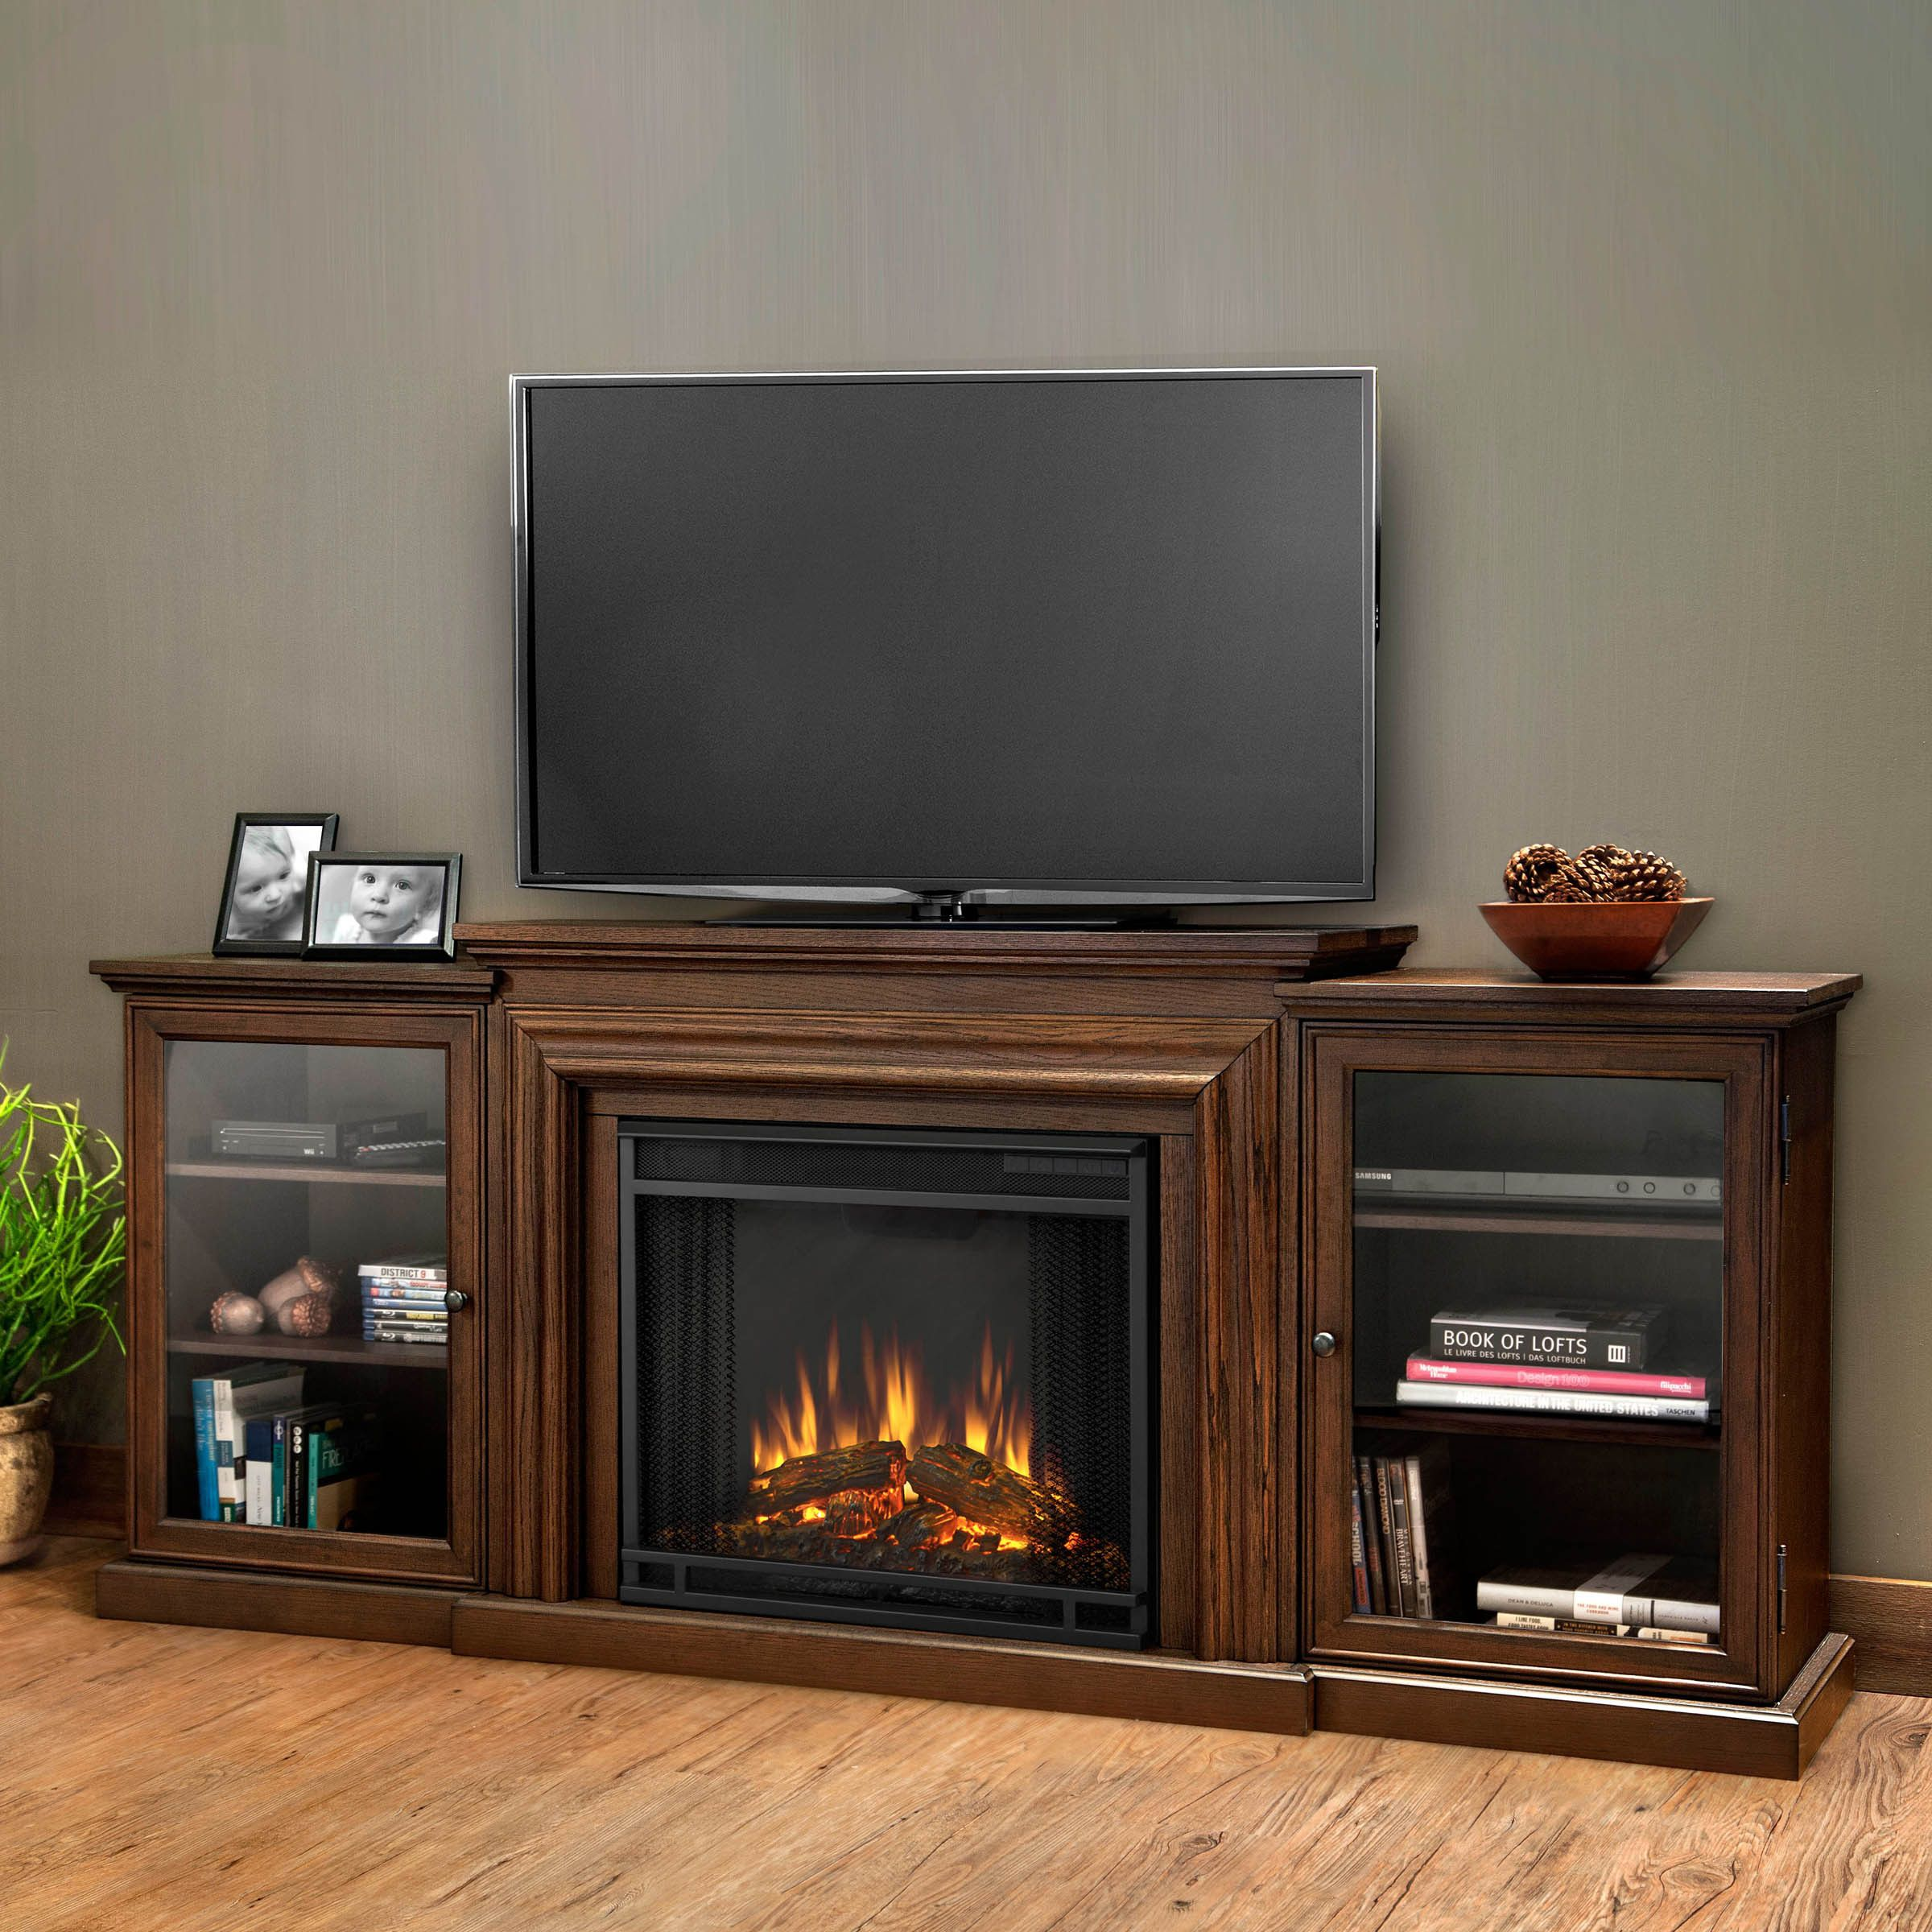 Traditional 58 Driftwood Fireplace Tv Stand With Doors Doors